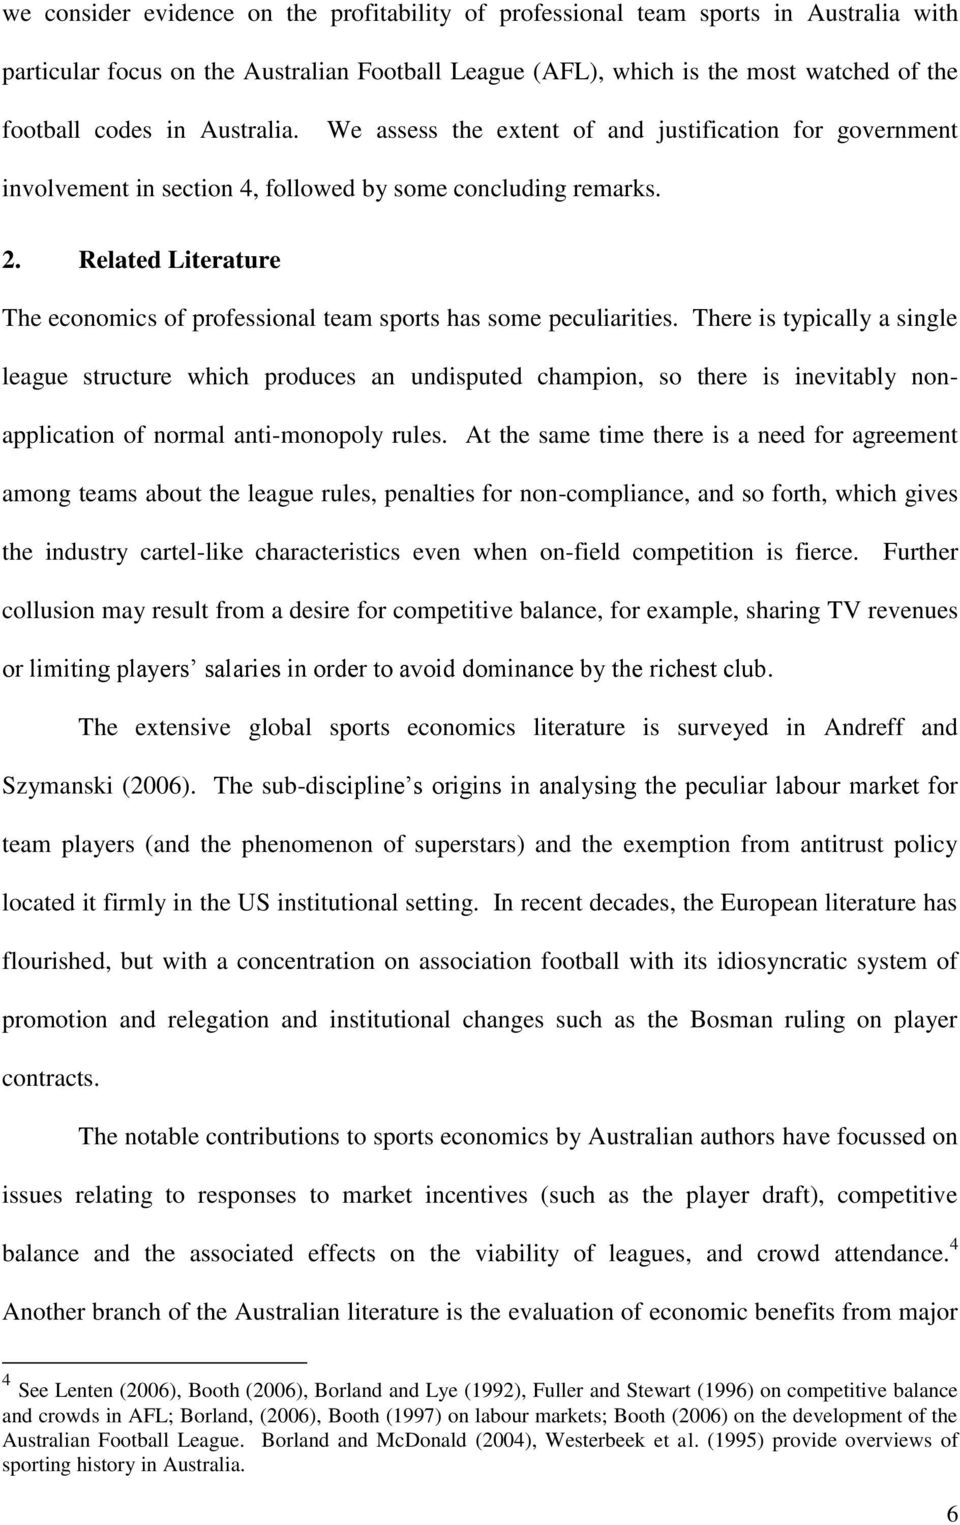 Related Literature The economics of professional team sports has some peculiarities.